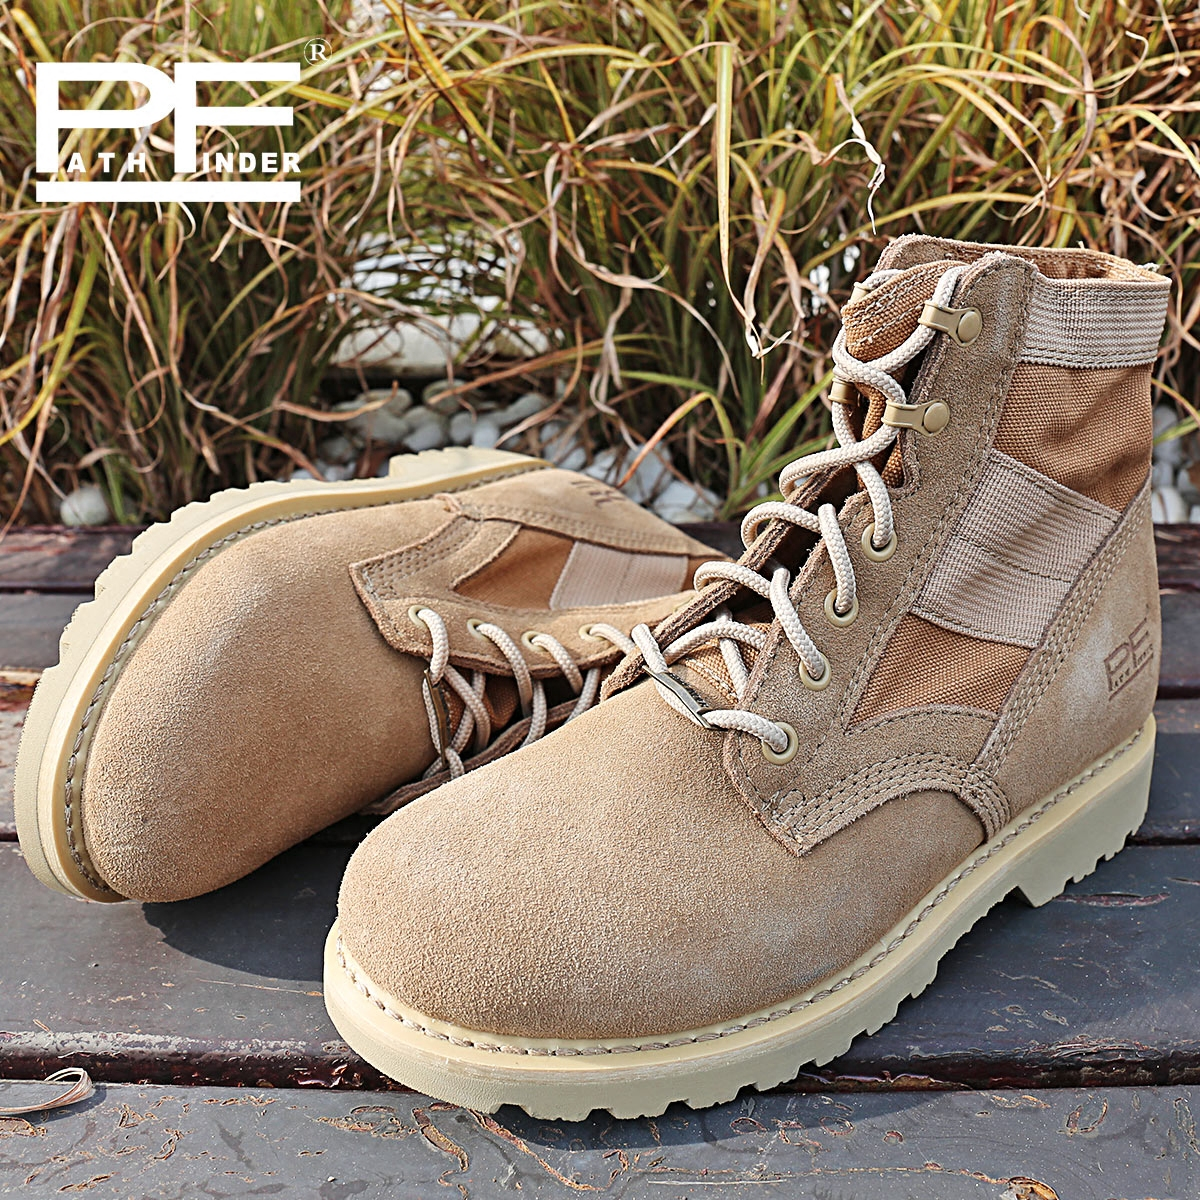 Pathfinder New America Army Men s Botas Desert Outdoor Hiking leather Botas Military Enthusiasts Marine Male